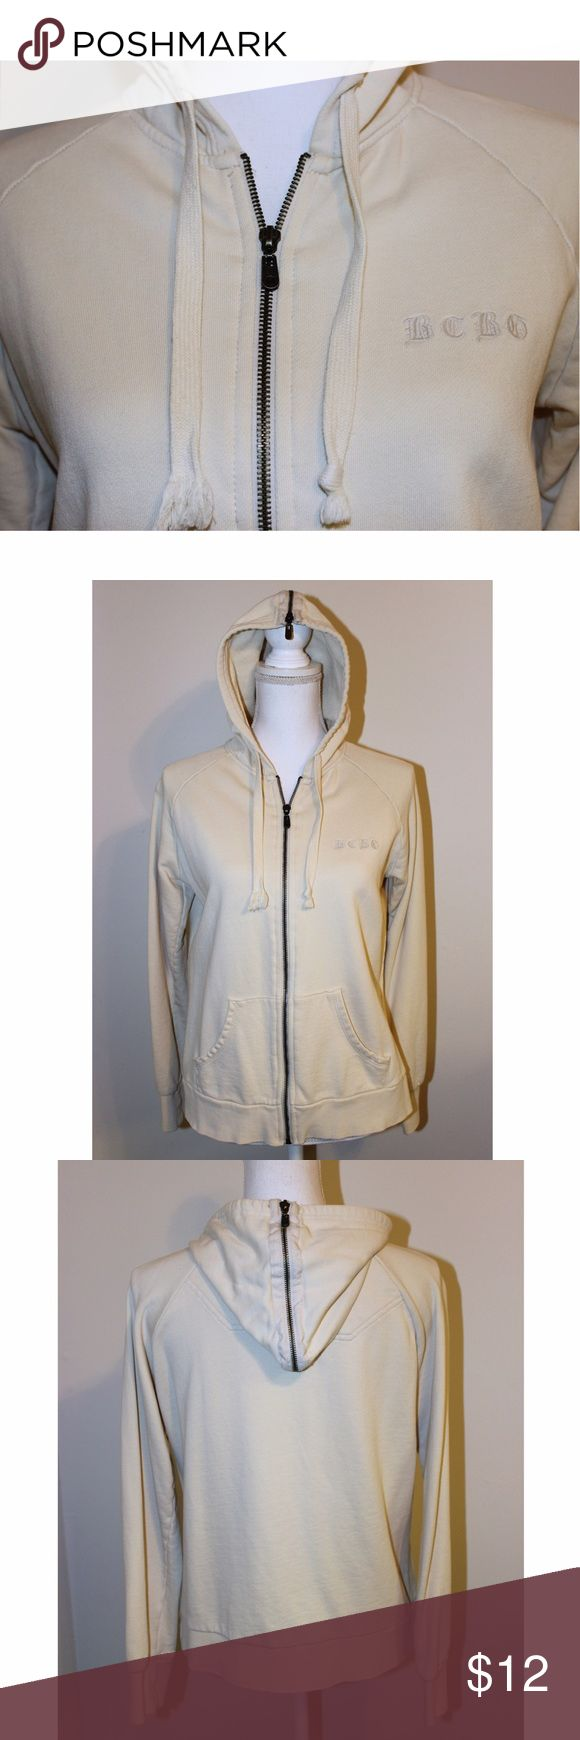 """BCBG Max Azria Beige Hoodie This is a great casual jacket! It has the BCBG logo on the front side, 2 front pockets, and zipper embellishment on the hood. It is made of all cotton. Measurements: Armpit to armpit 20"""" - Waist and hips 39"""" - Length 27"""". The jacket is by BCBG Max Azria and is size Large. It was worn maybe once or twice, but is like new - without flaws. BCBGMaxAzria Jackets & Coats"""